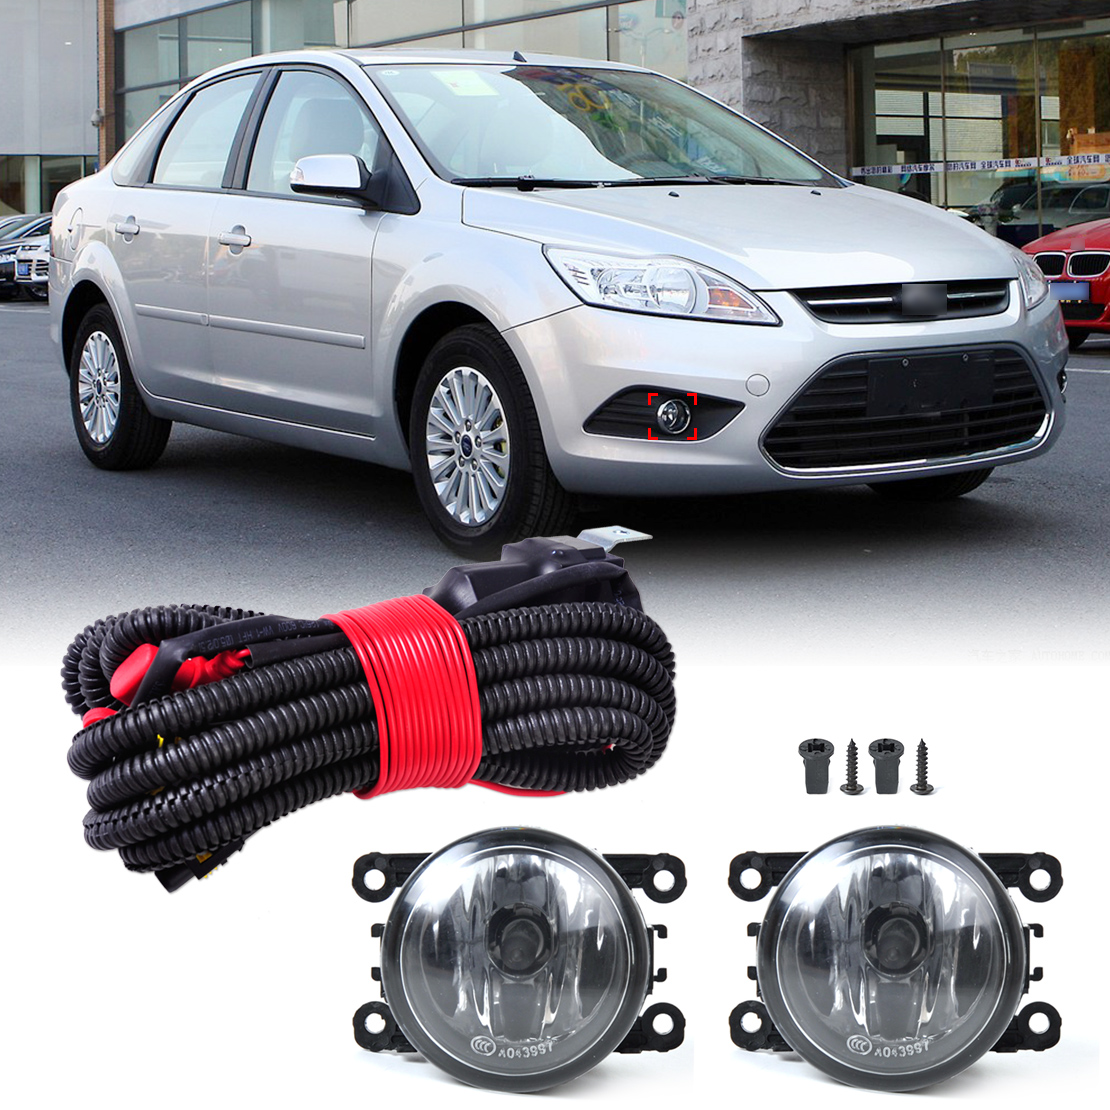 beler 1 Set H11 Wiring Harness Sockets Wire Connector + 2 Fog Lights Lamp for Ford Focus Honda CR-V Pilot Acura TSX Nissan for lincoln ls 2005 2006 h11 wiring harness sockets wire connector switch 2 fog lights drl front bumper led lamp